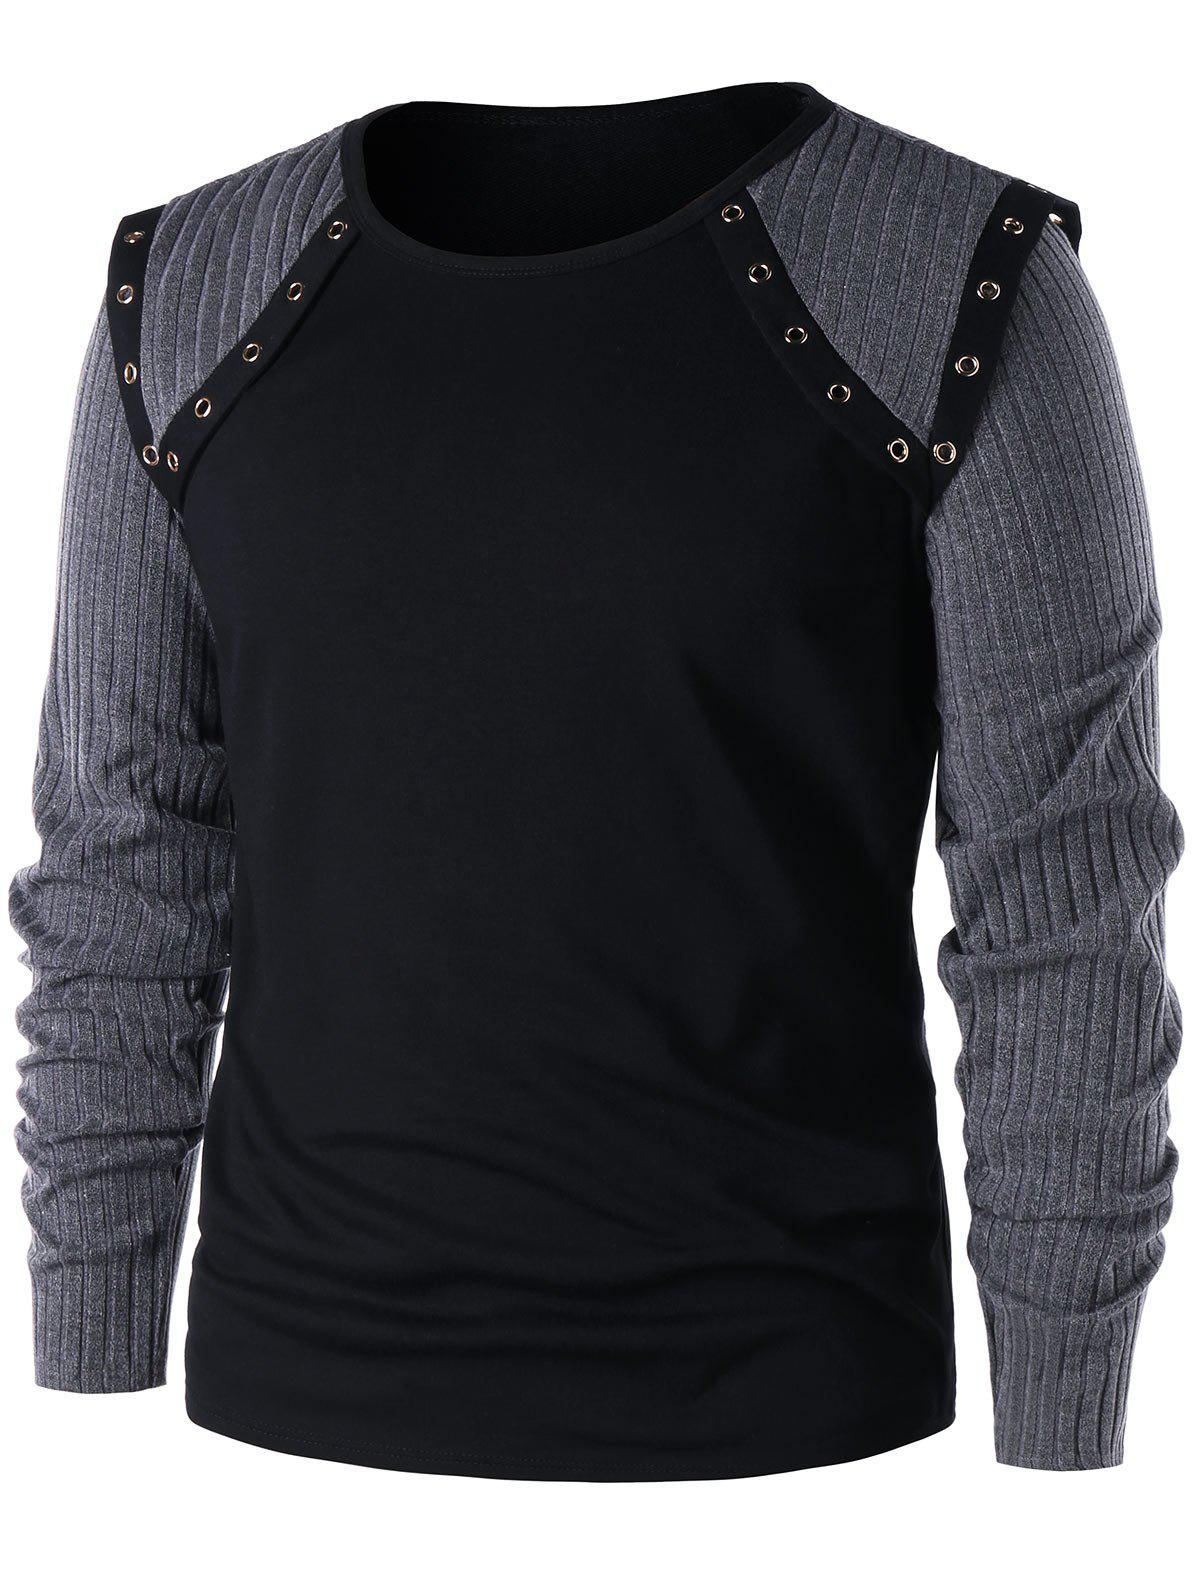 Ribbed Knit Panel T shirt 244618301